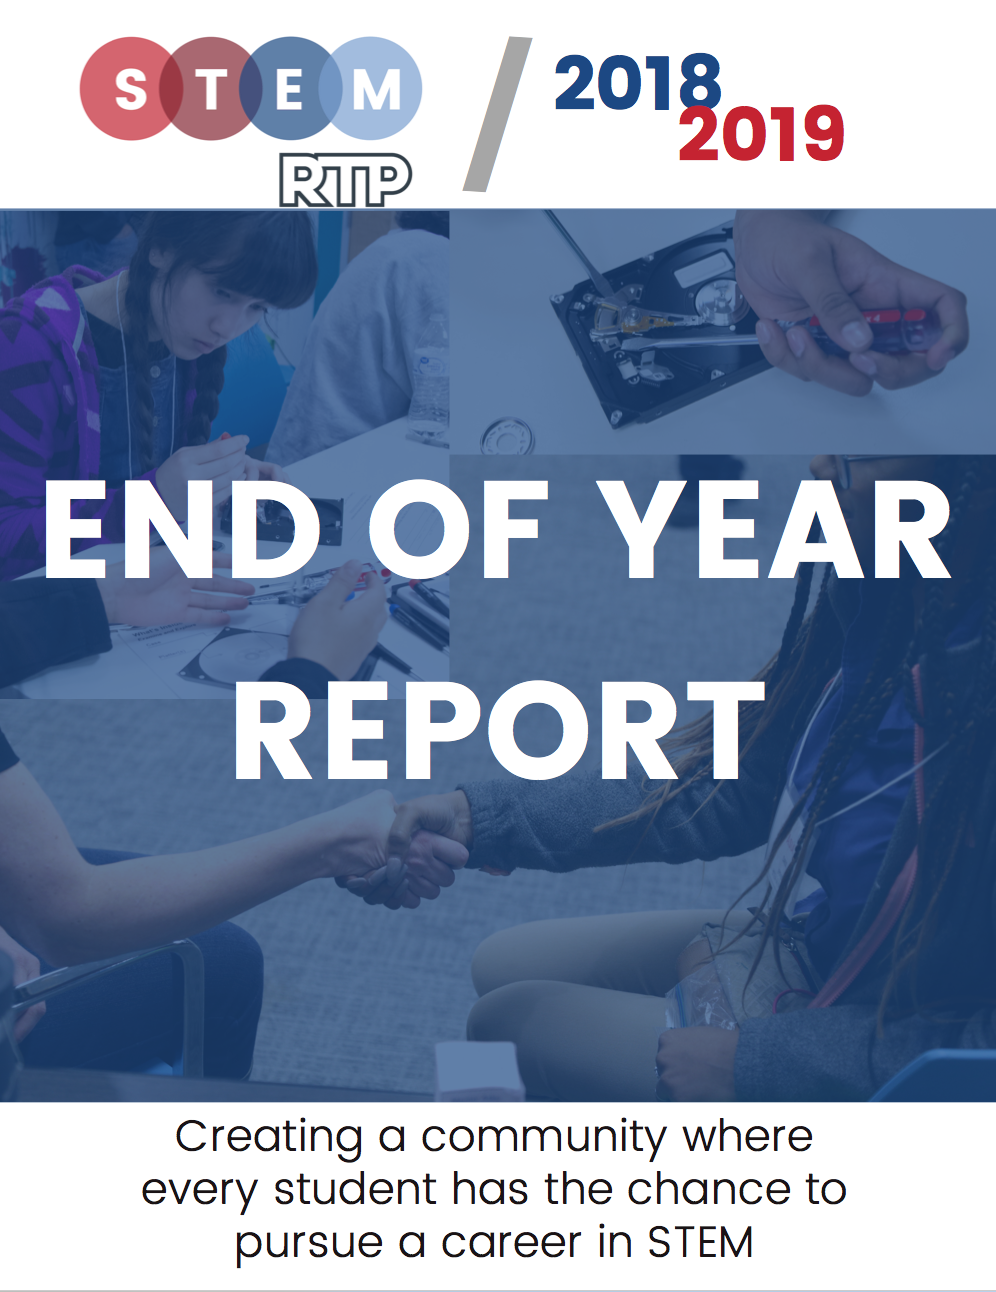 End of Year Report 2018-2019